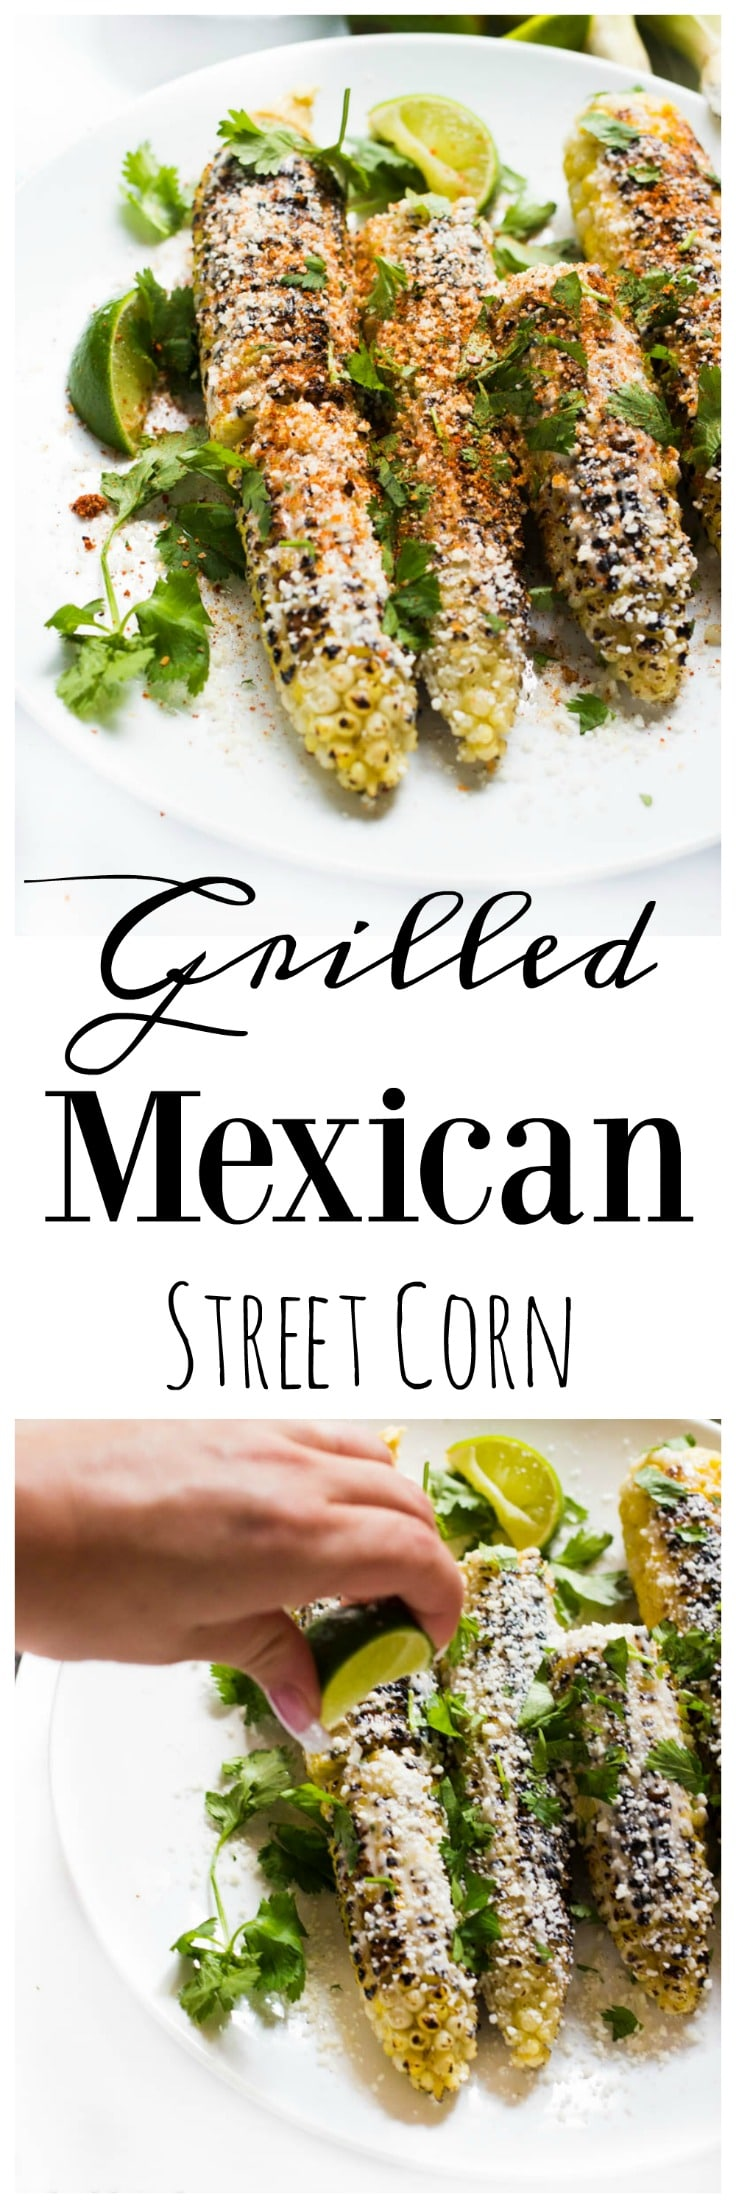 Grilled Mexican Street Corn (collage)